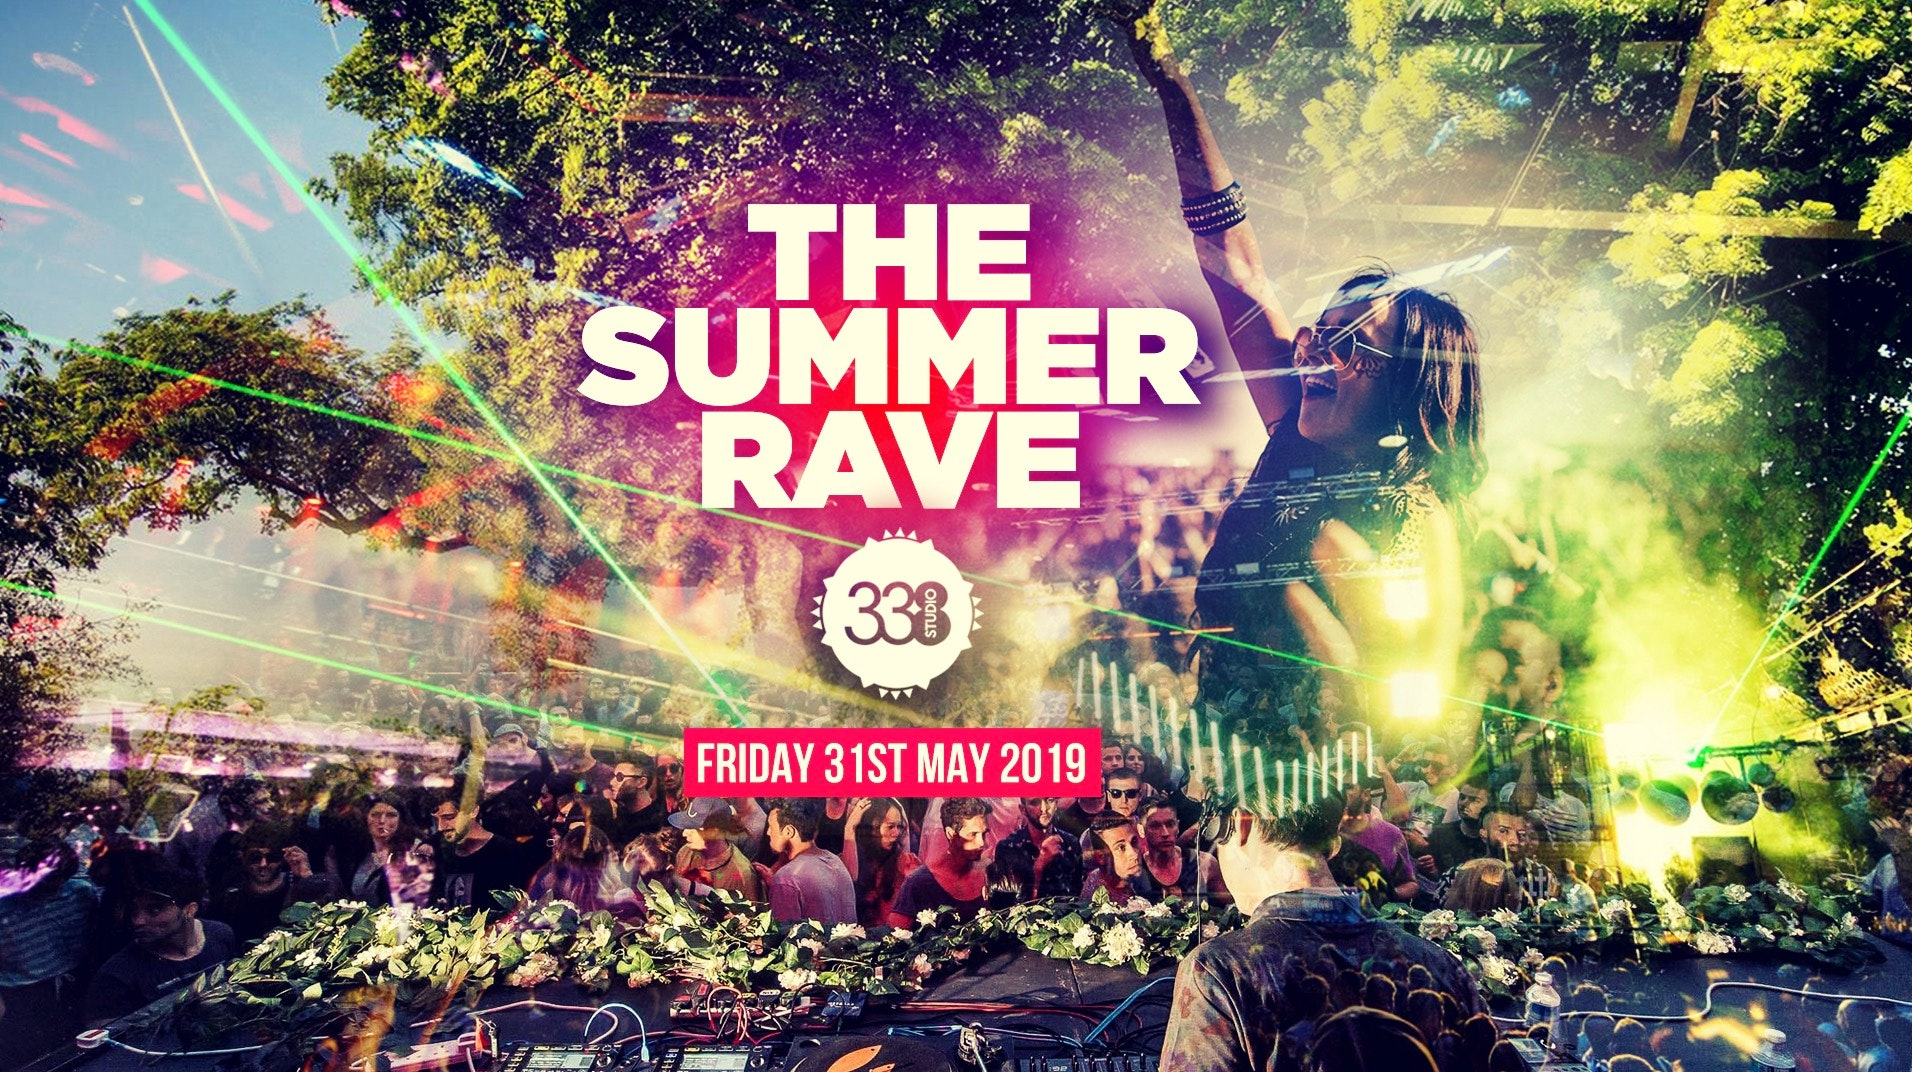 The Summer Rave at Studio 338!